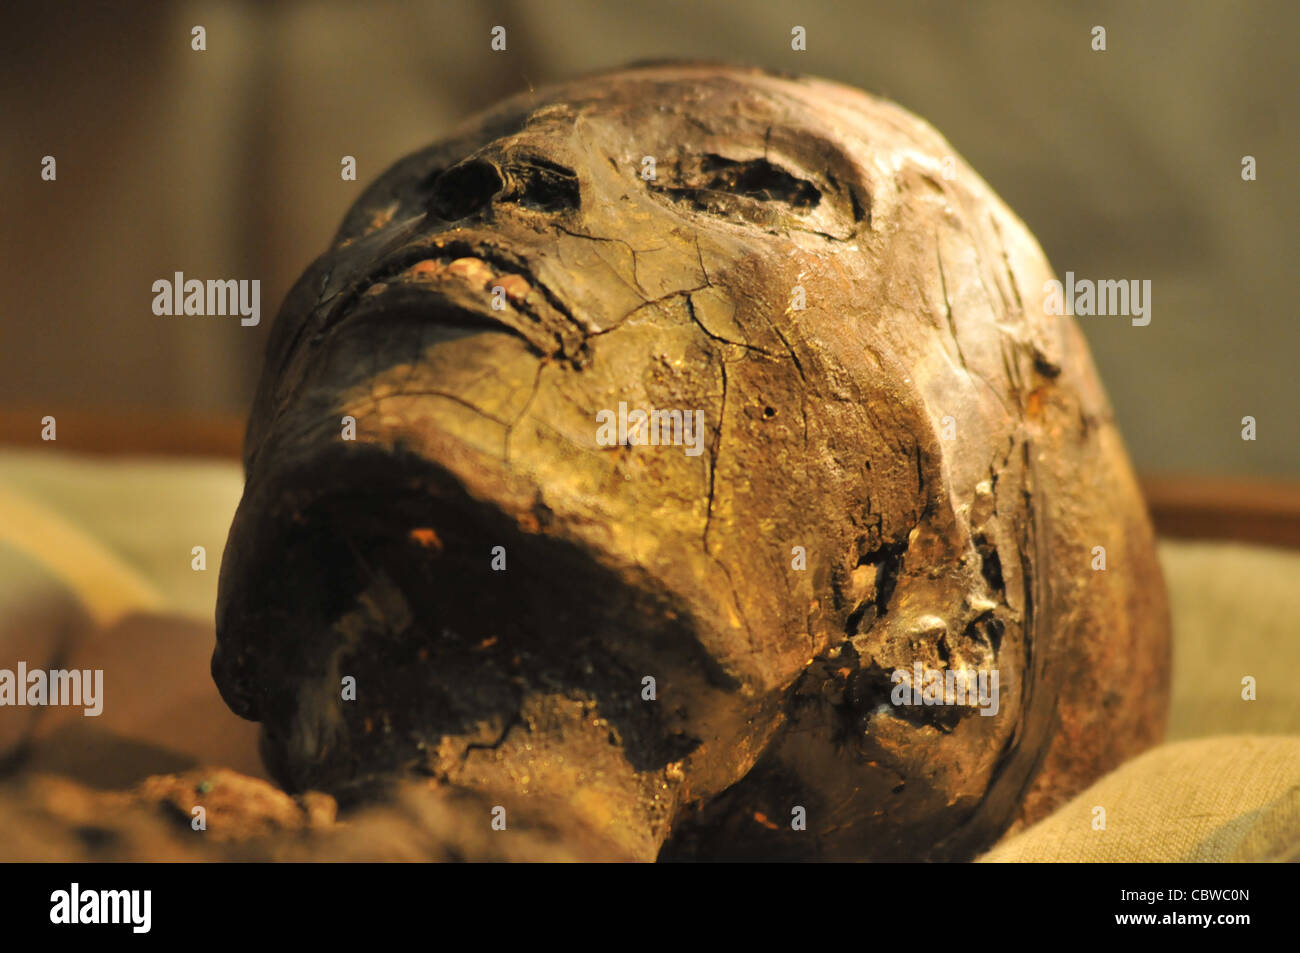 November 23, 2008 -- The mummy of King Tutankhamon in his tomb discovered by Howard Carter in 1922, in the Valley - Stock Image